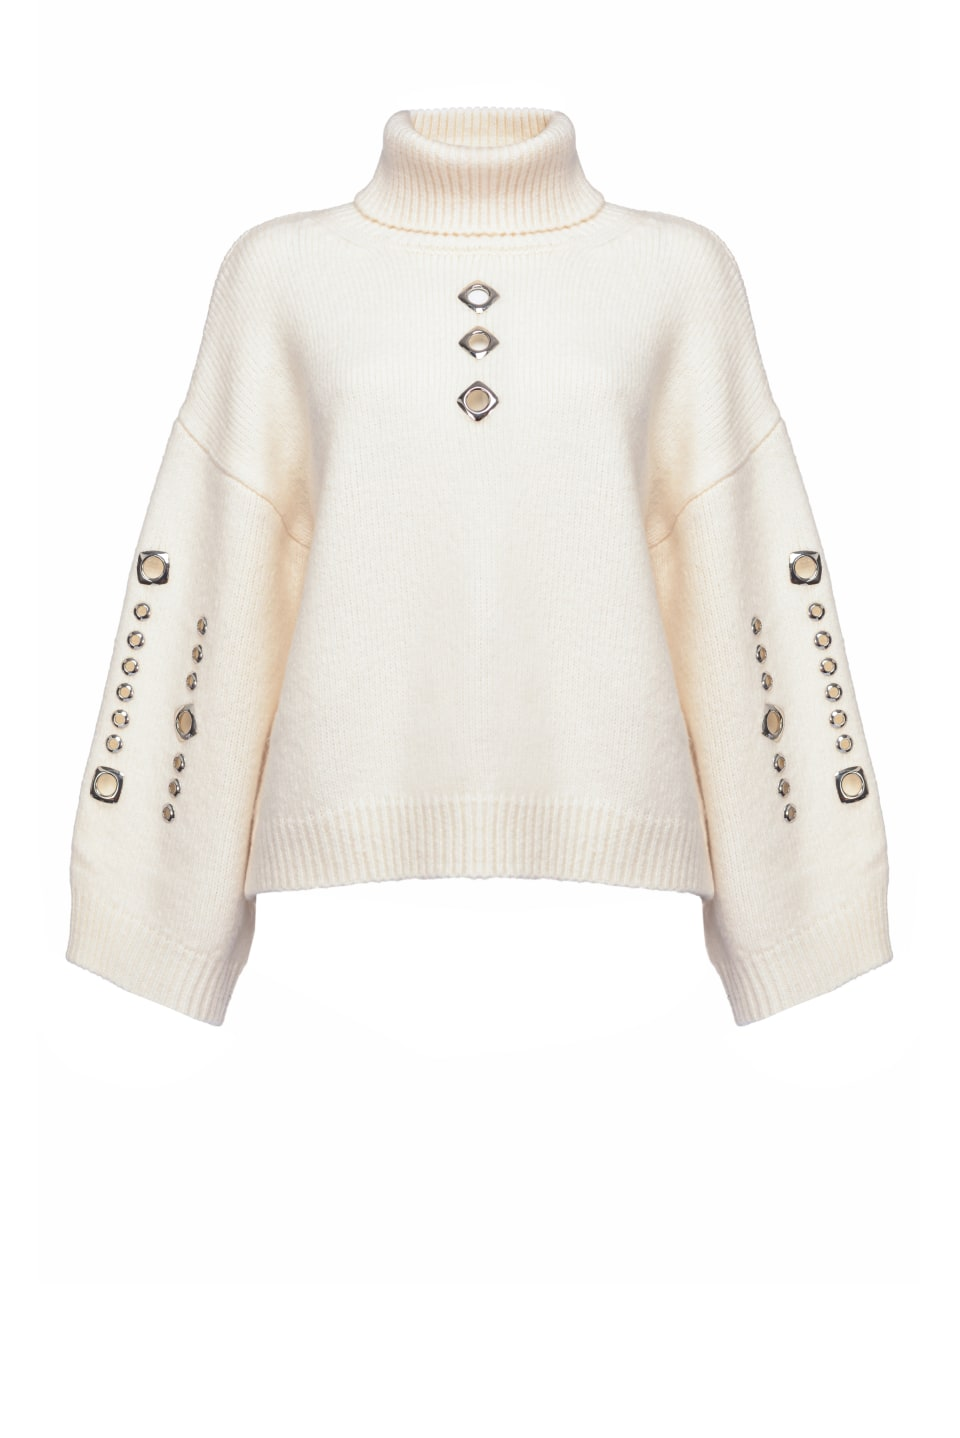 Turtleneck pullover with metal eyelets - Pinko